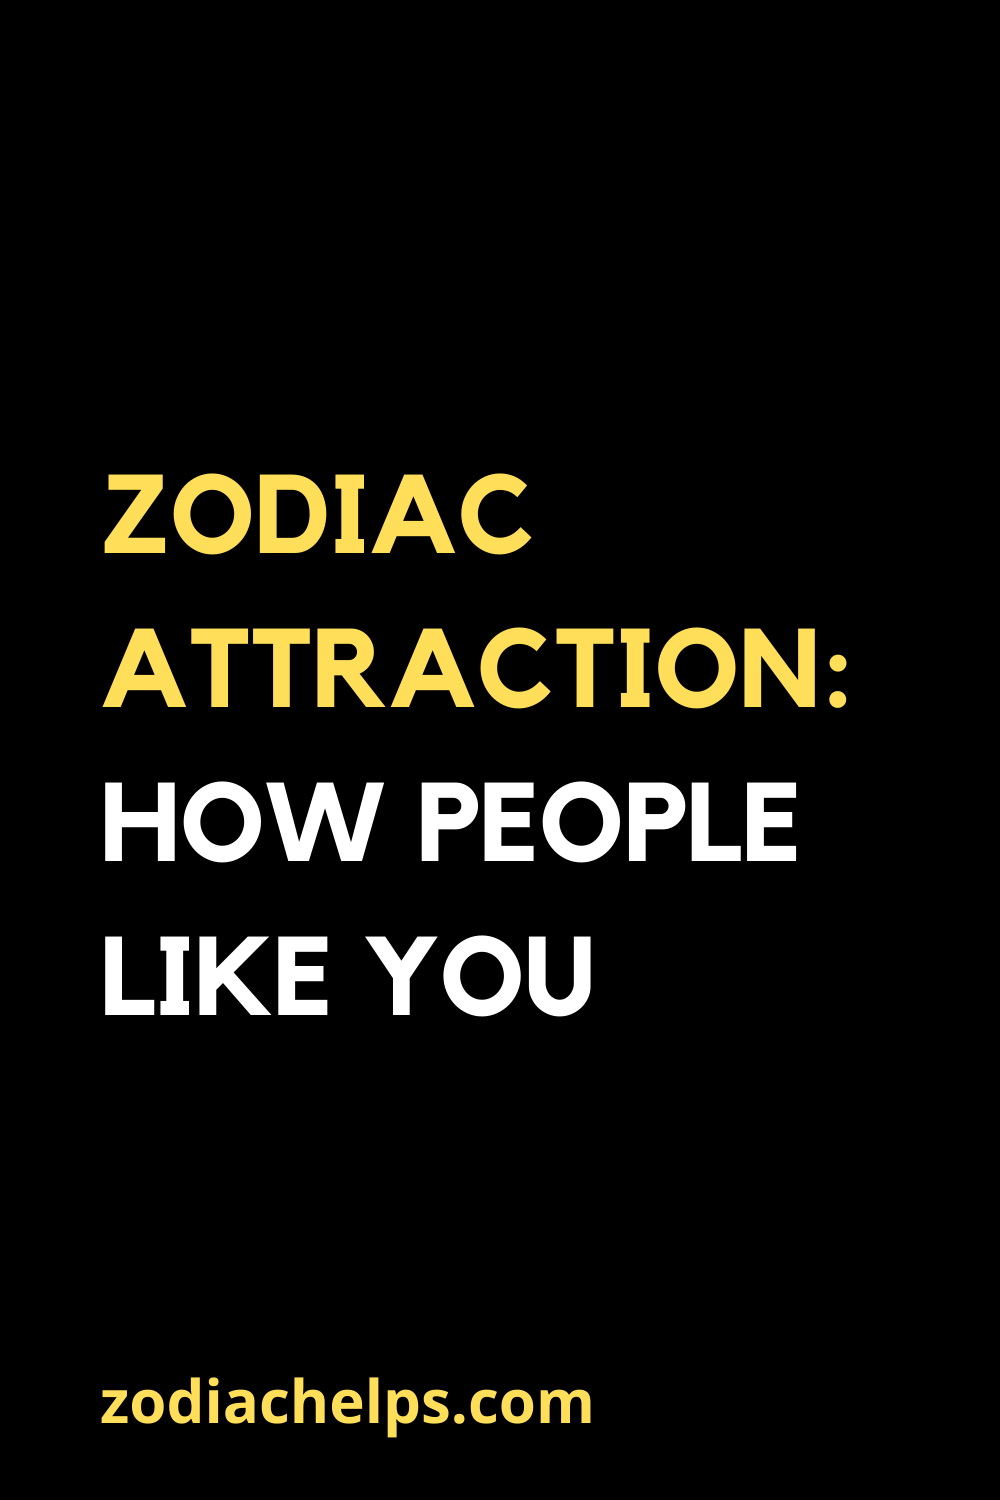 Zodiac attraction: how people like you